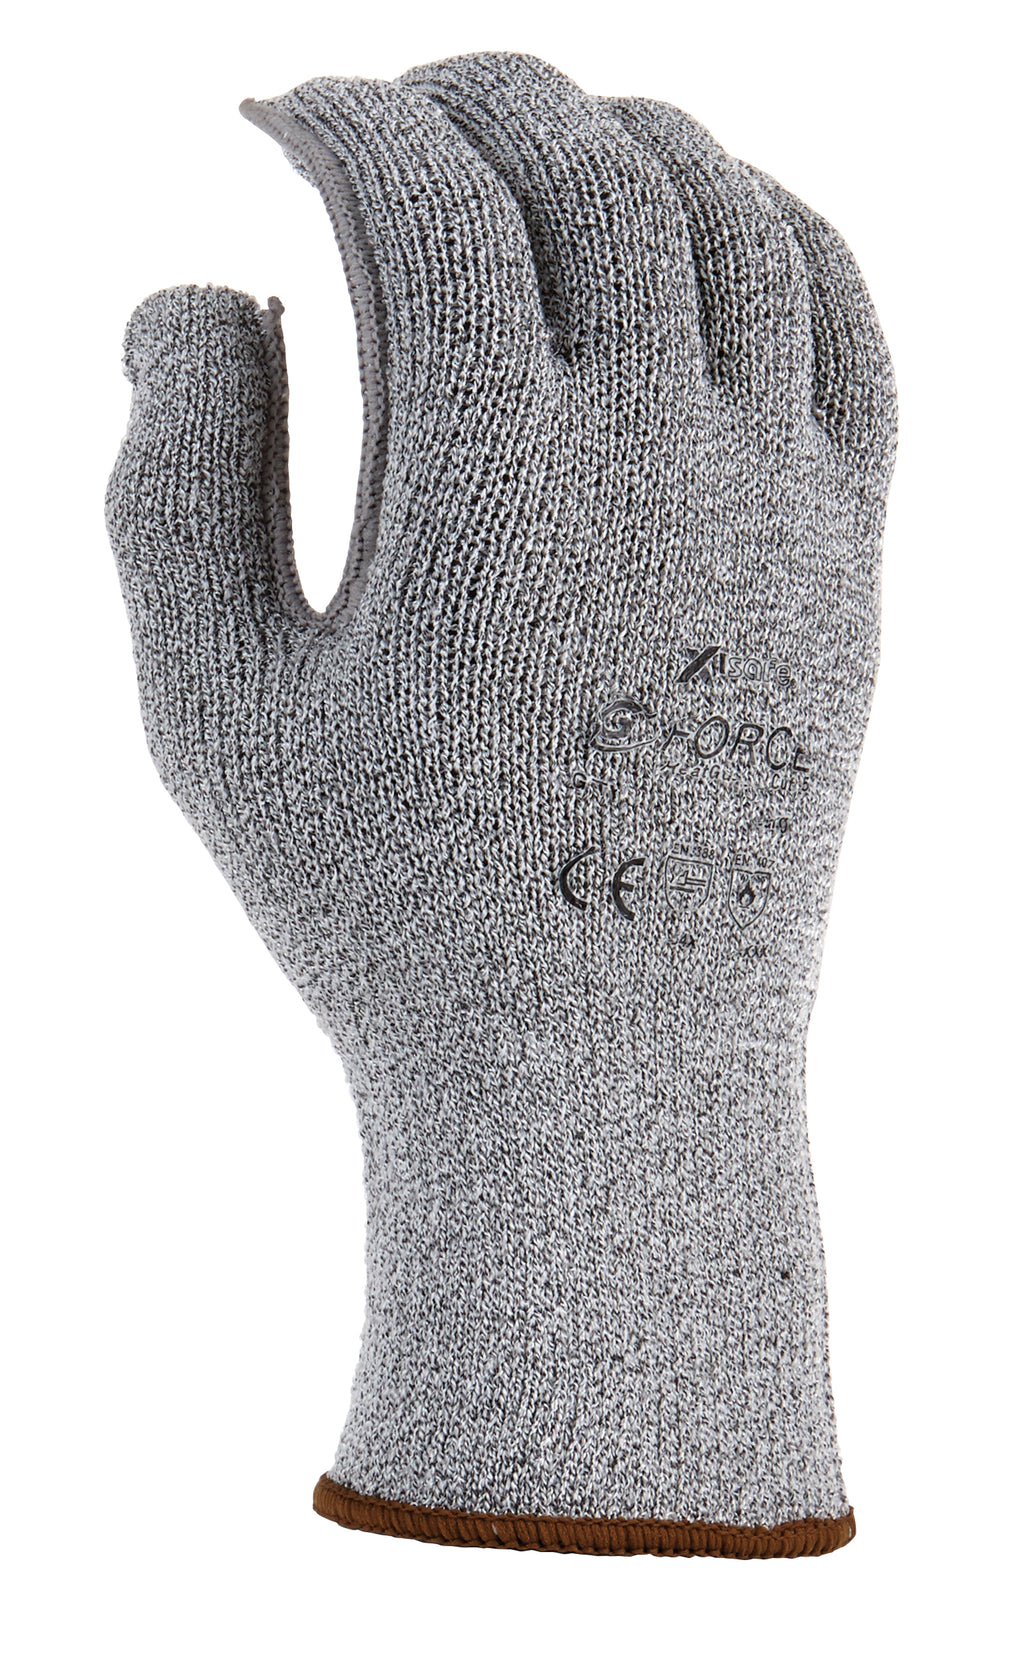 G-Force HeatGuard Cut 5 Glove